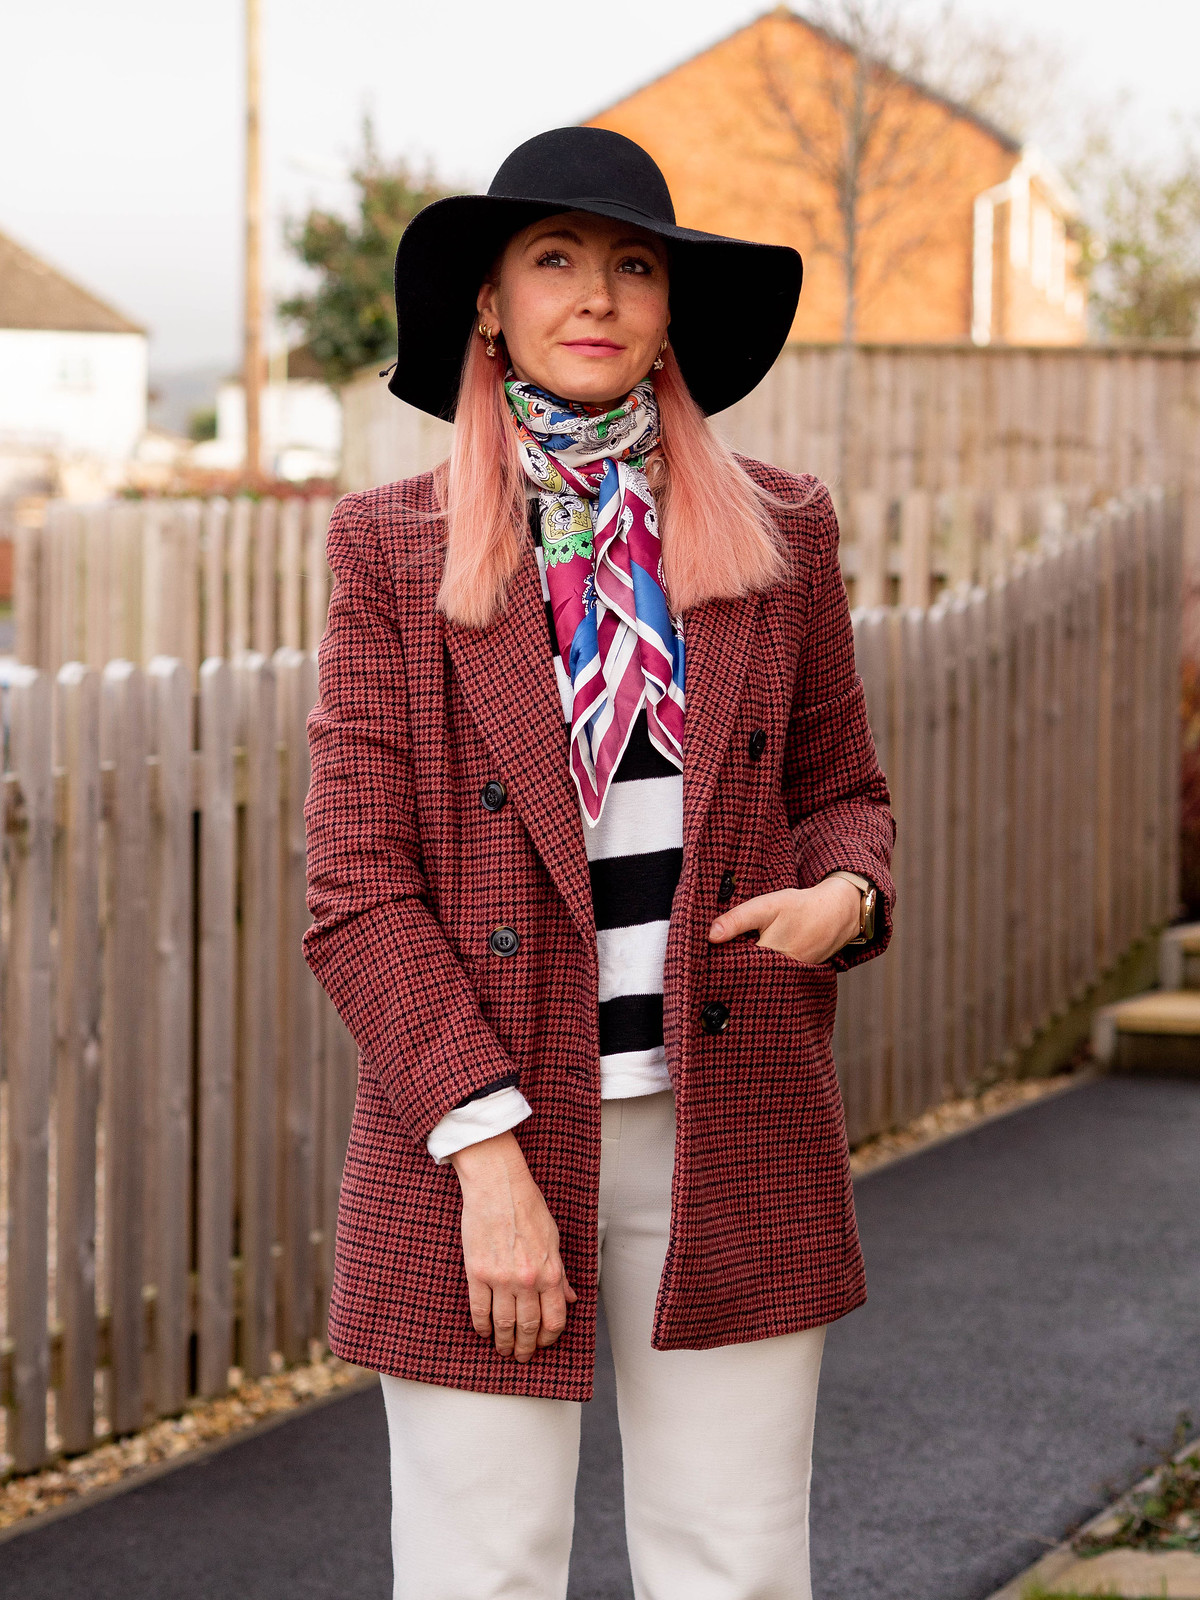 Wearing Black and White a Different Way: Catherine Summers of Not Dressed As Lamb wearing a red check double breasted jacket, black/white striped sweater, multicoloured neck scarf, floppy black hat, white trousers, black lace-up boots | Fashion Over 40